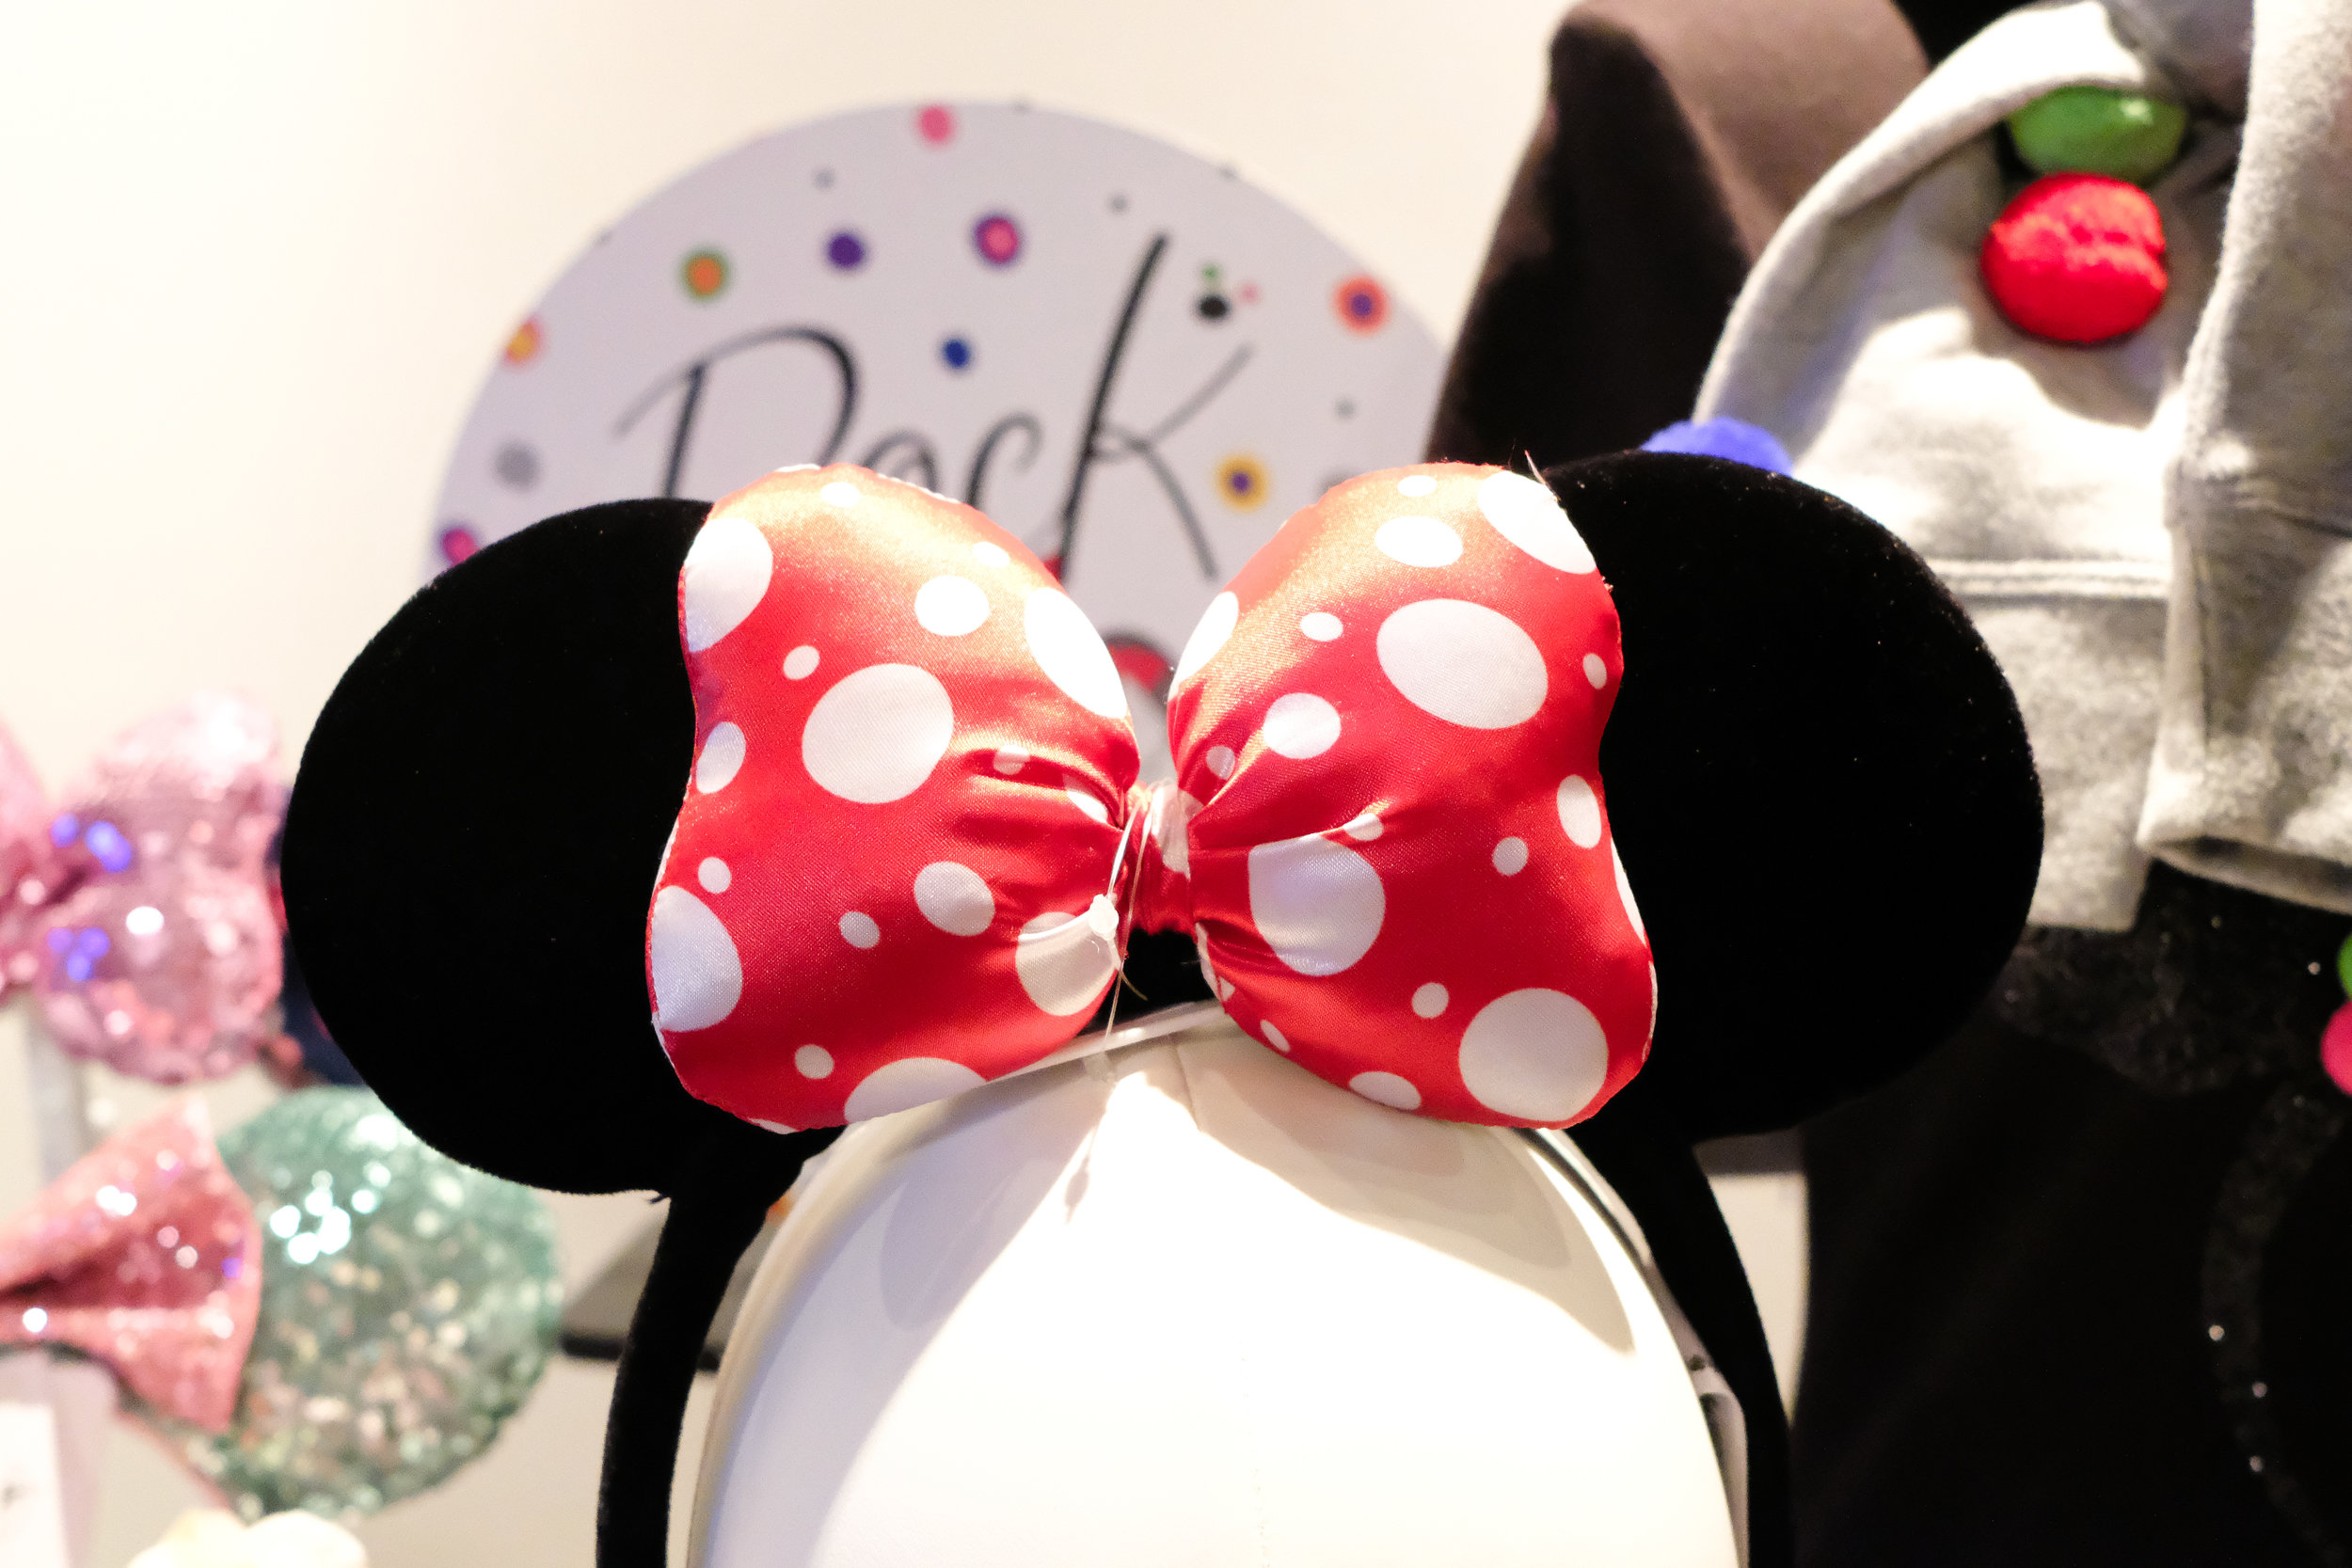 Updated Minnie Ears coming to the Disney Parks